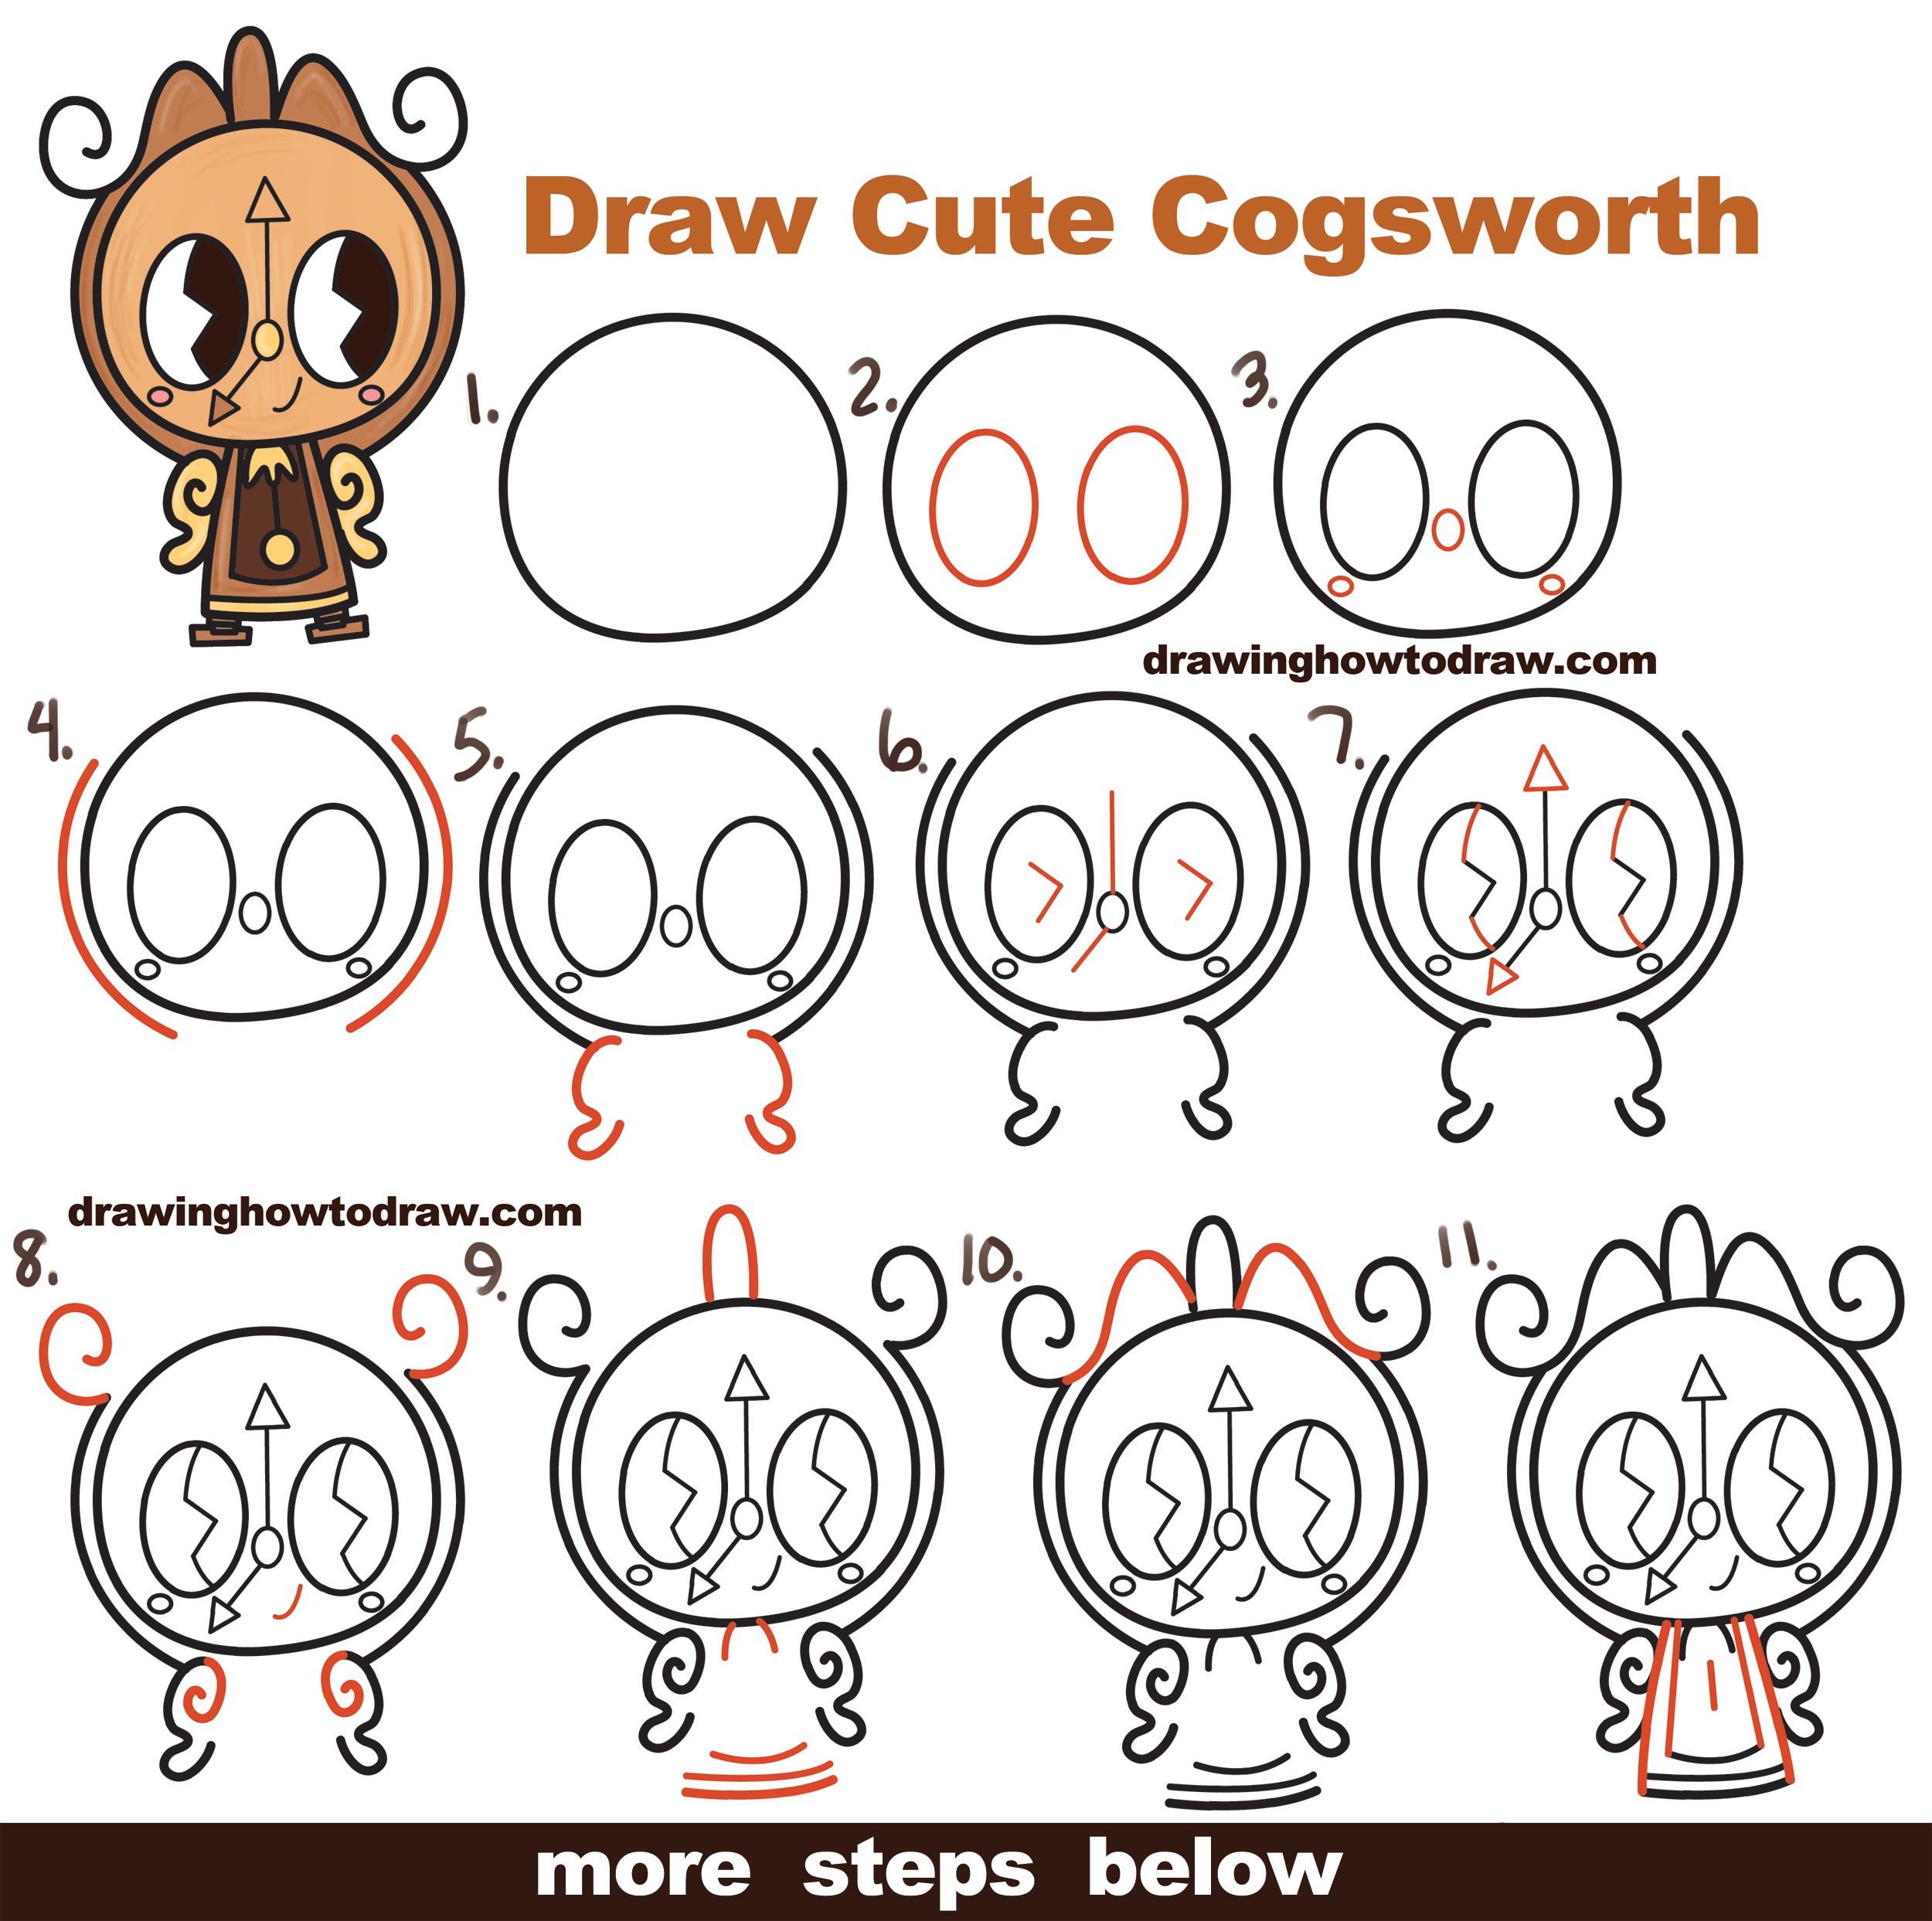 How To Draw Cute Kawaii Chibi Cogsworth The Clock From Beauty And Beast Easy Step